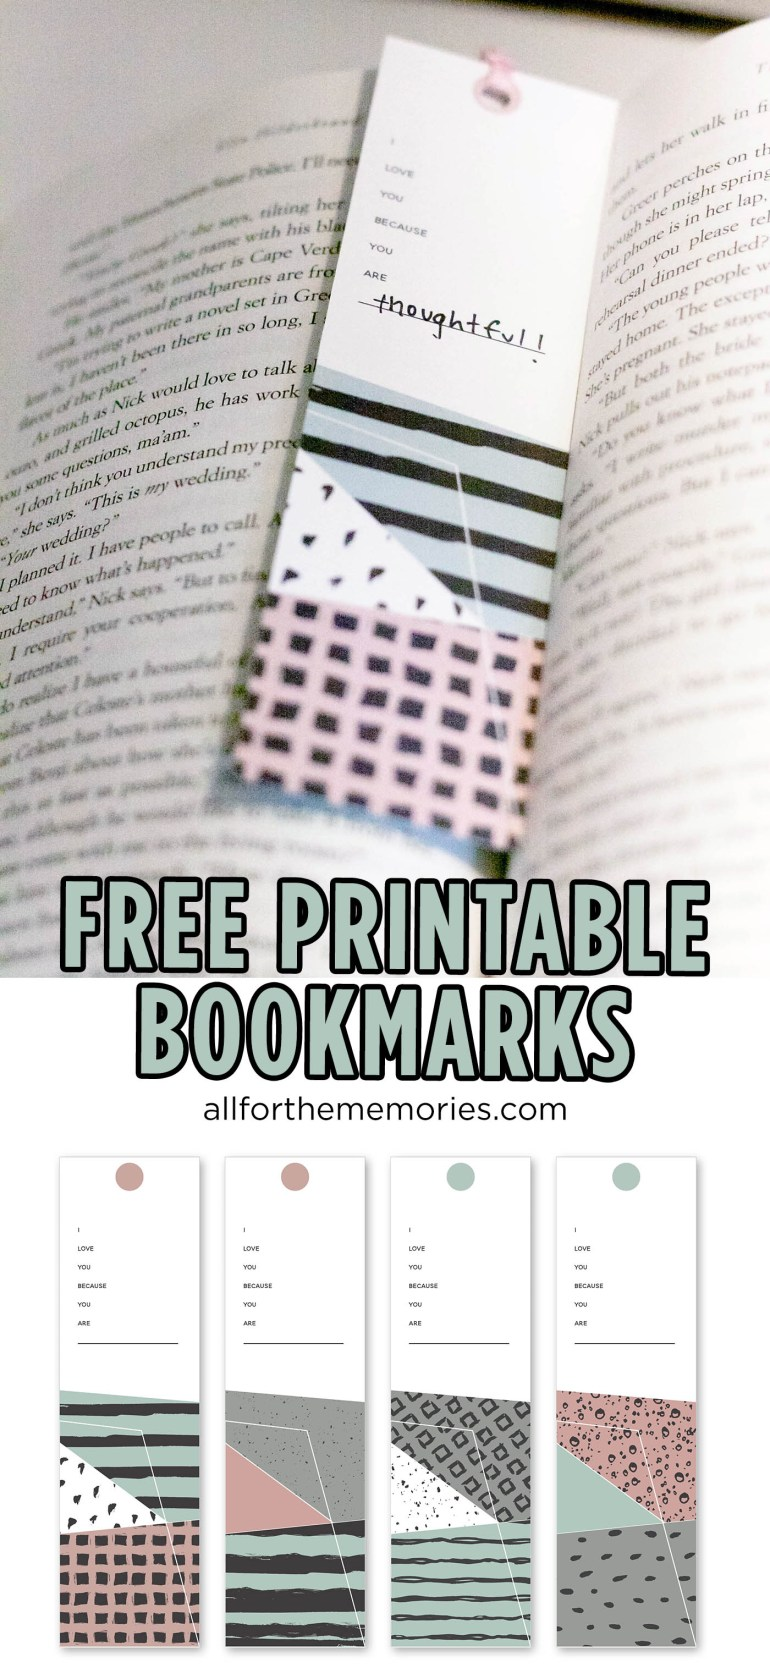 Free printable bookmarks